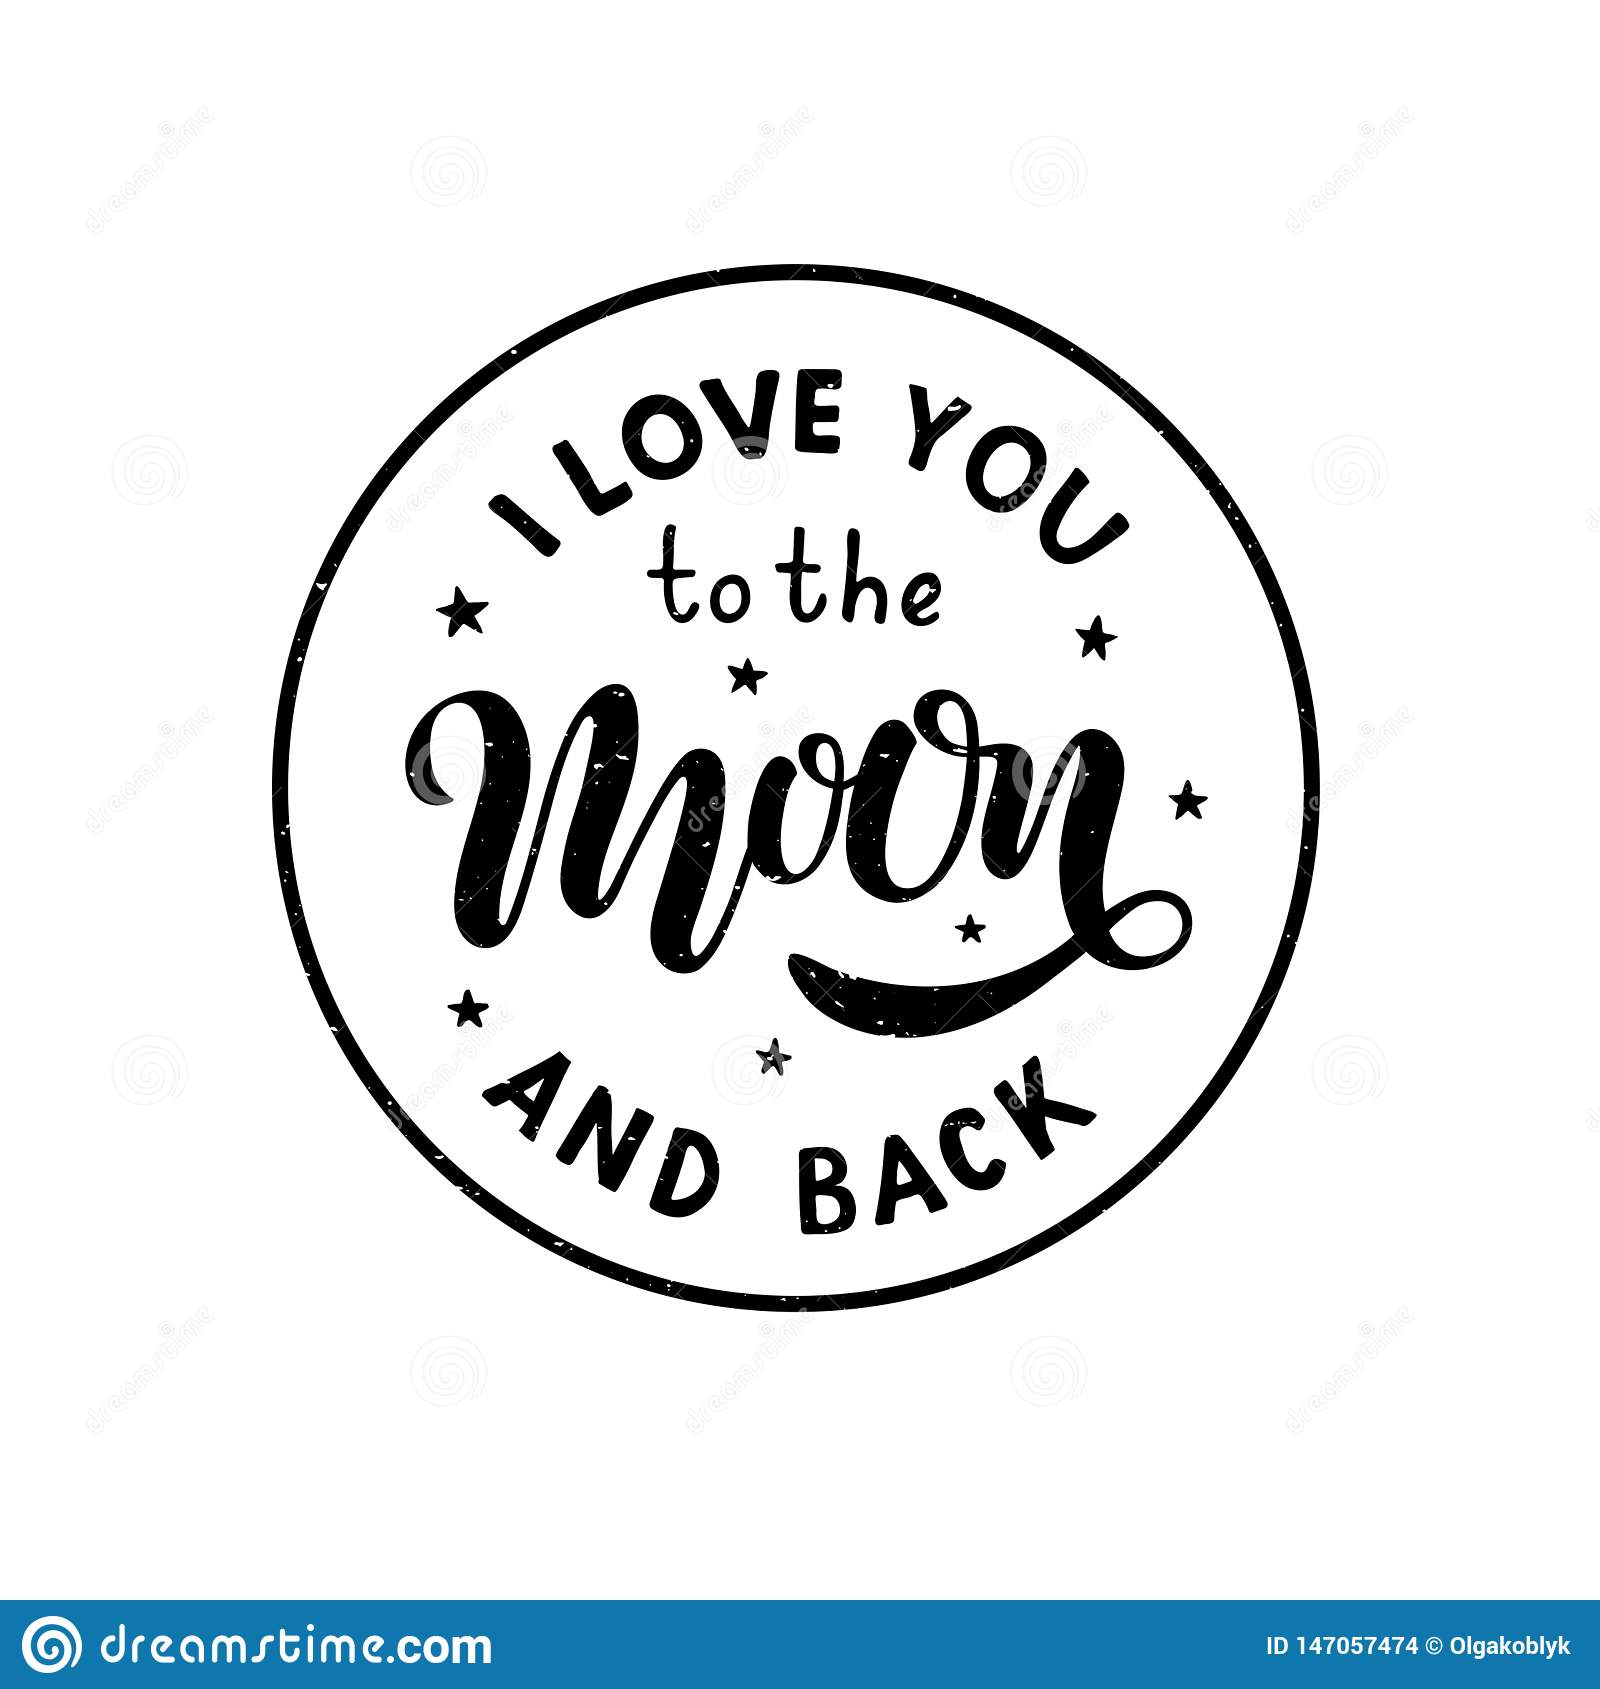 I love you to the moon and back - Hand written lettering phrase